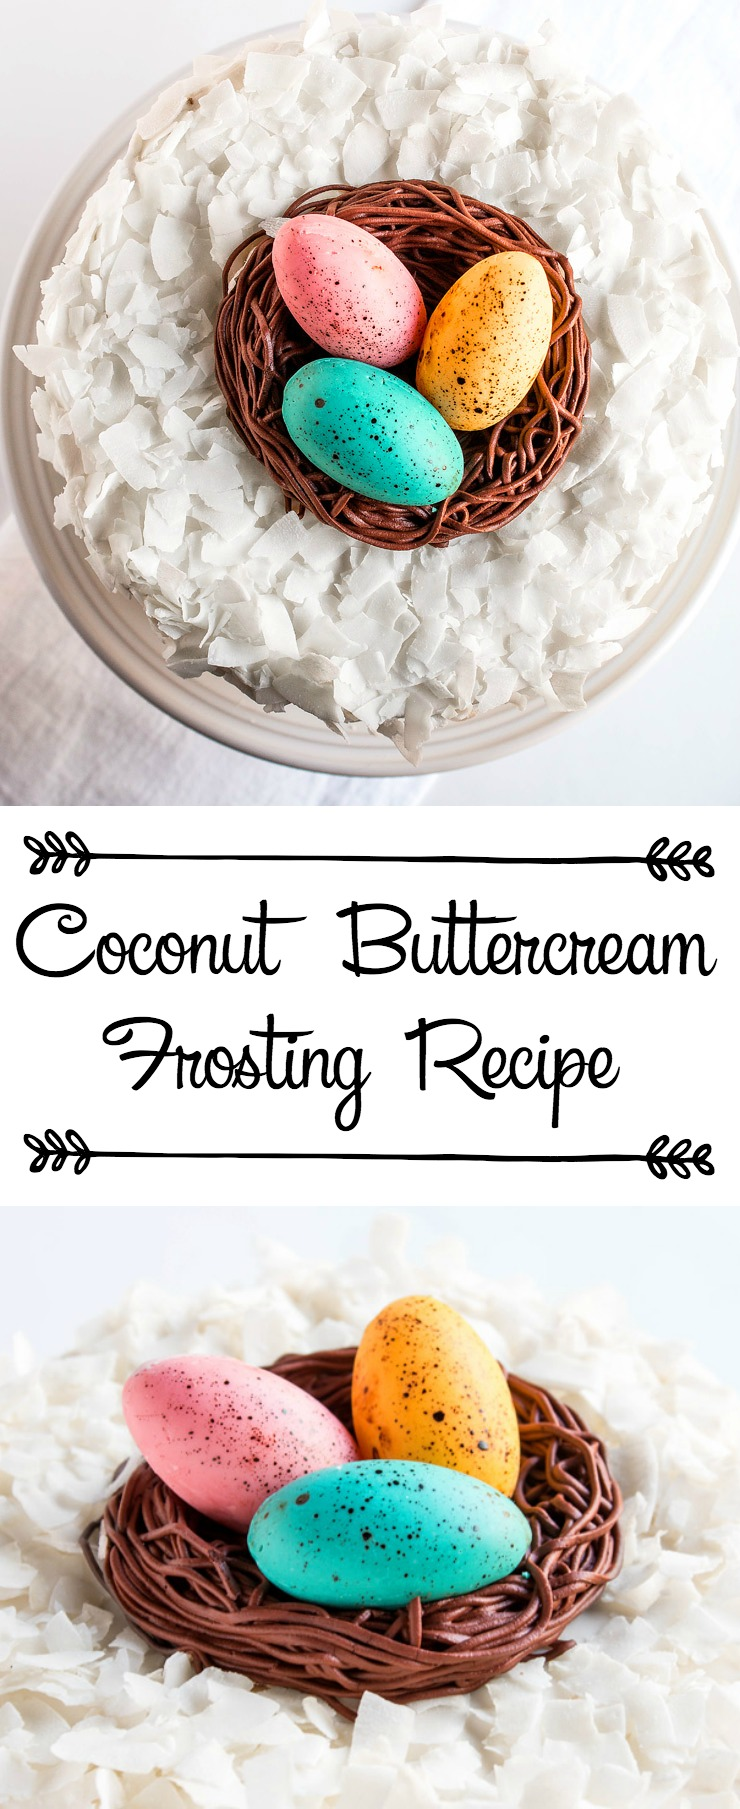 Coconut Buttercream Frosting Just in Time for Spring | The Bearfoot Baker